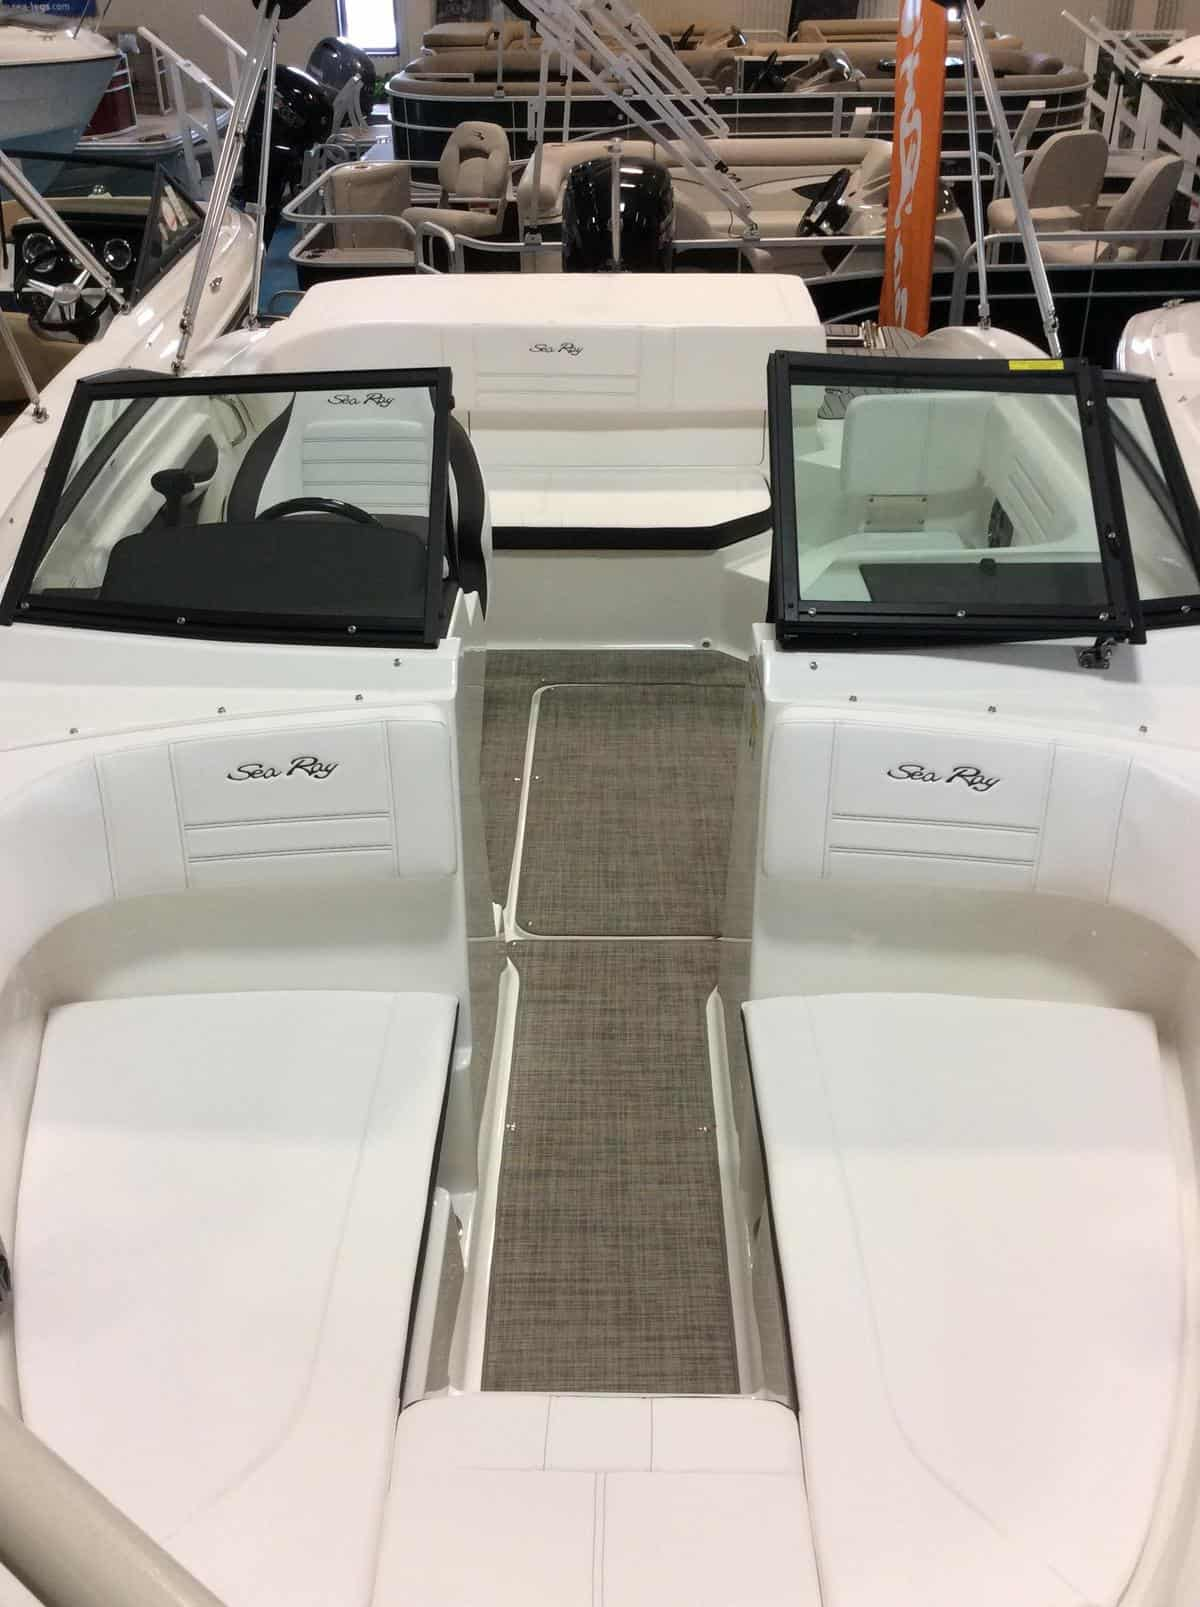 NEW 2019 Sea Ray 19 SPXO - Hutchinson's Boat Works